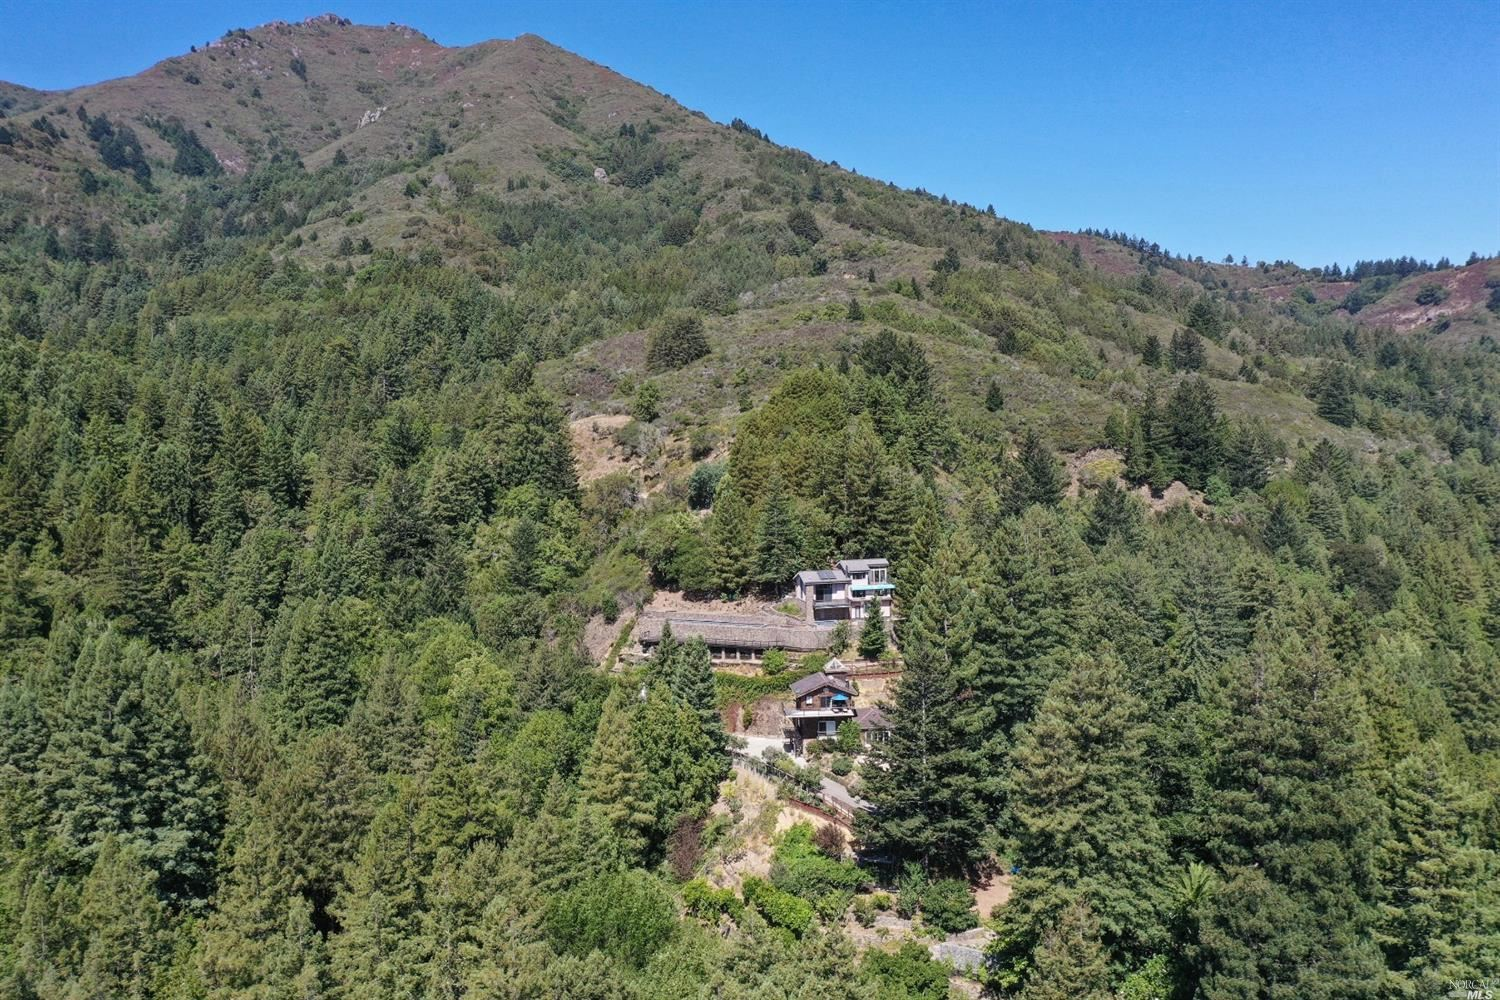 630 Blithedale Avenue, Mill Valley, CA 94941 - MLS#: 321036306